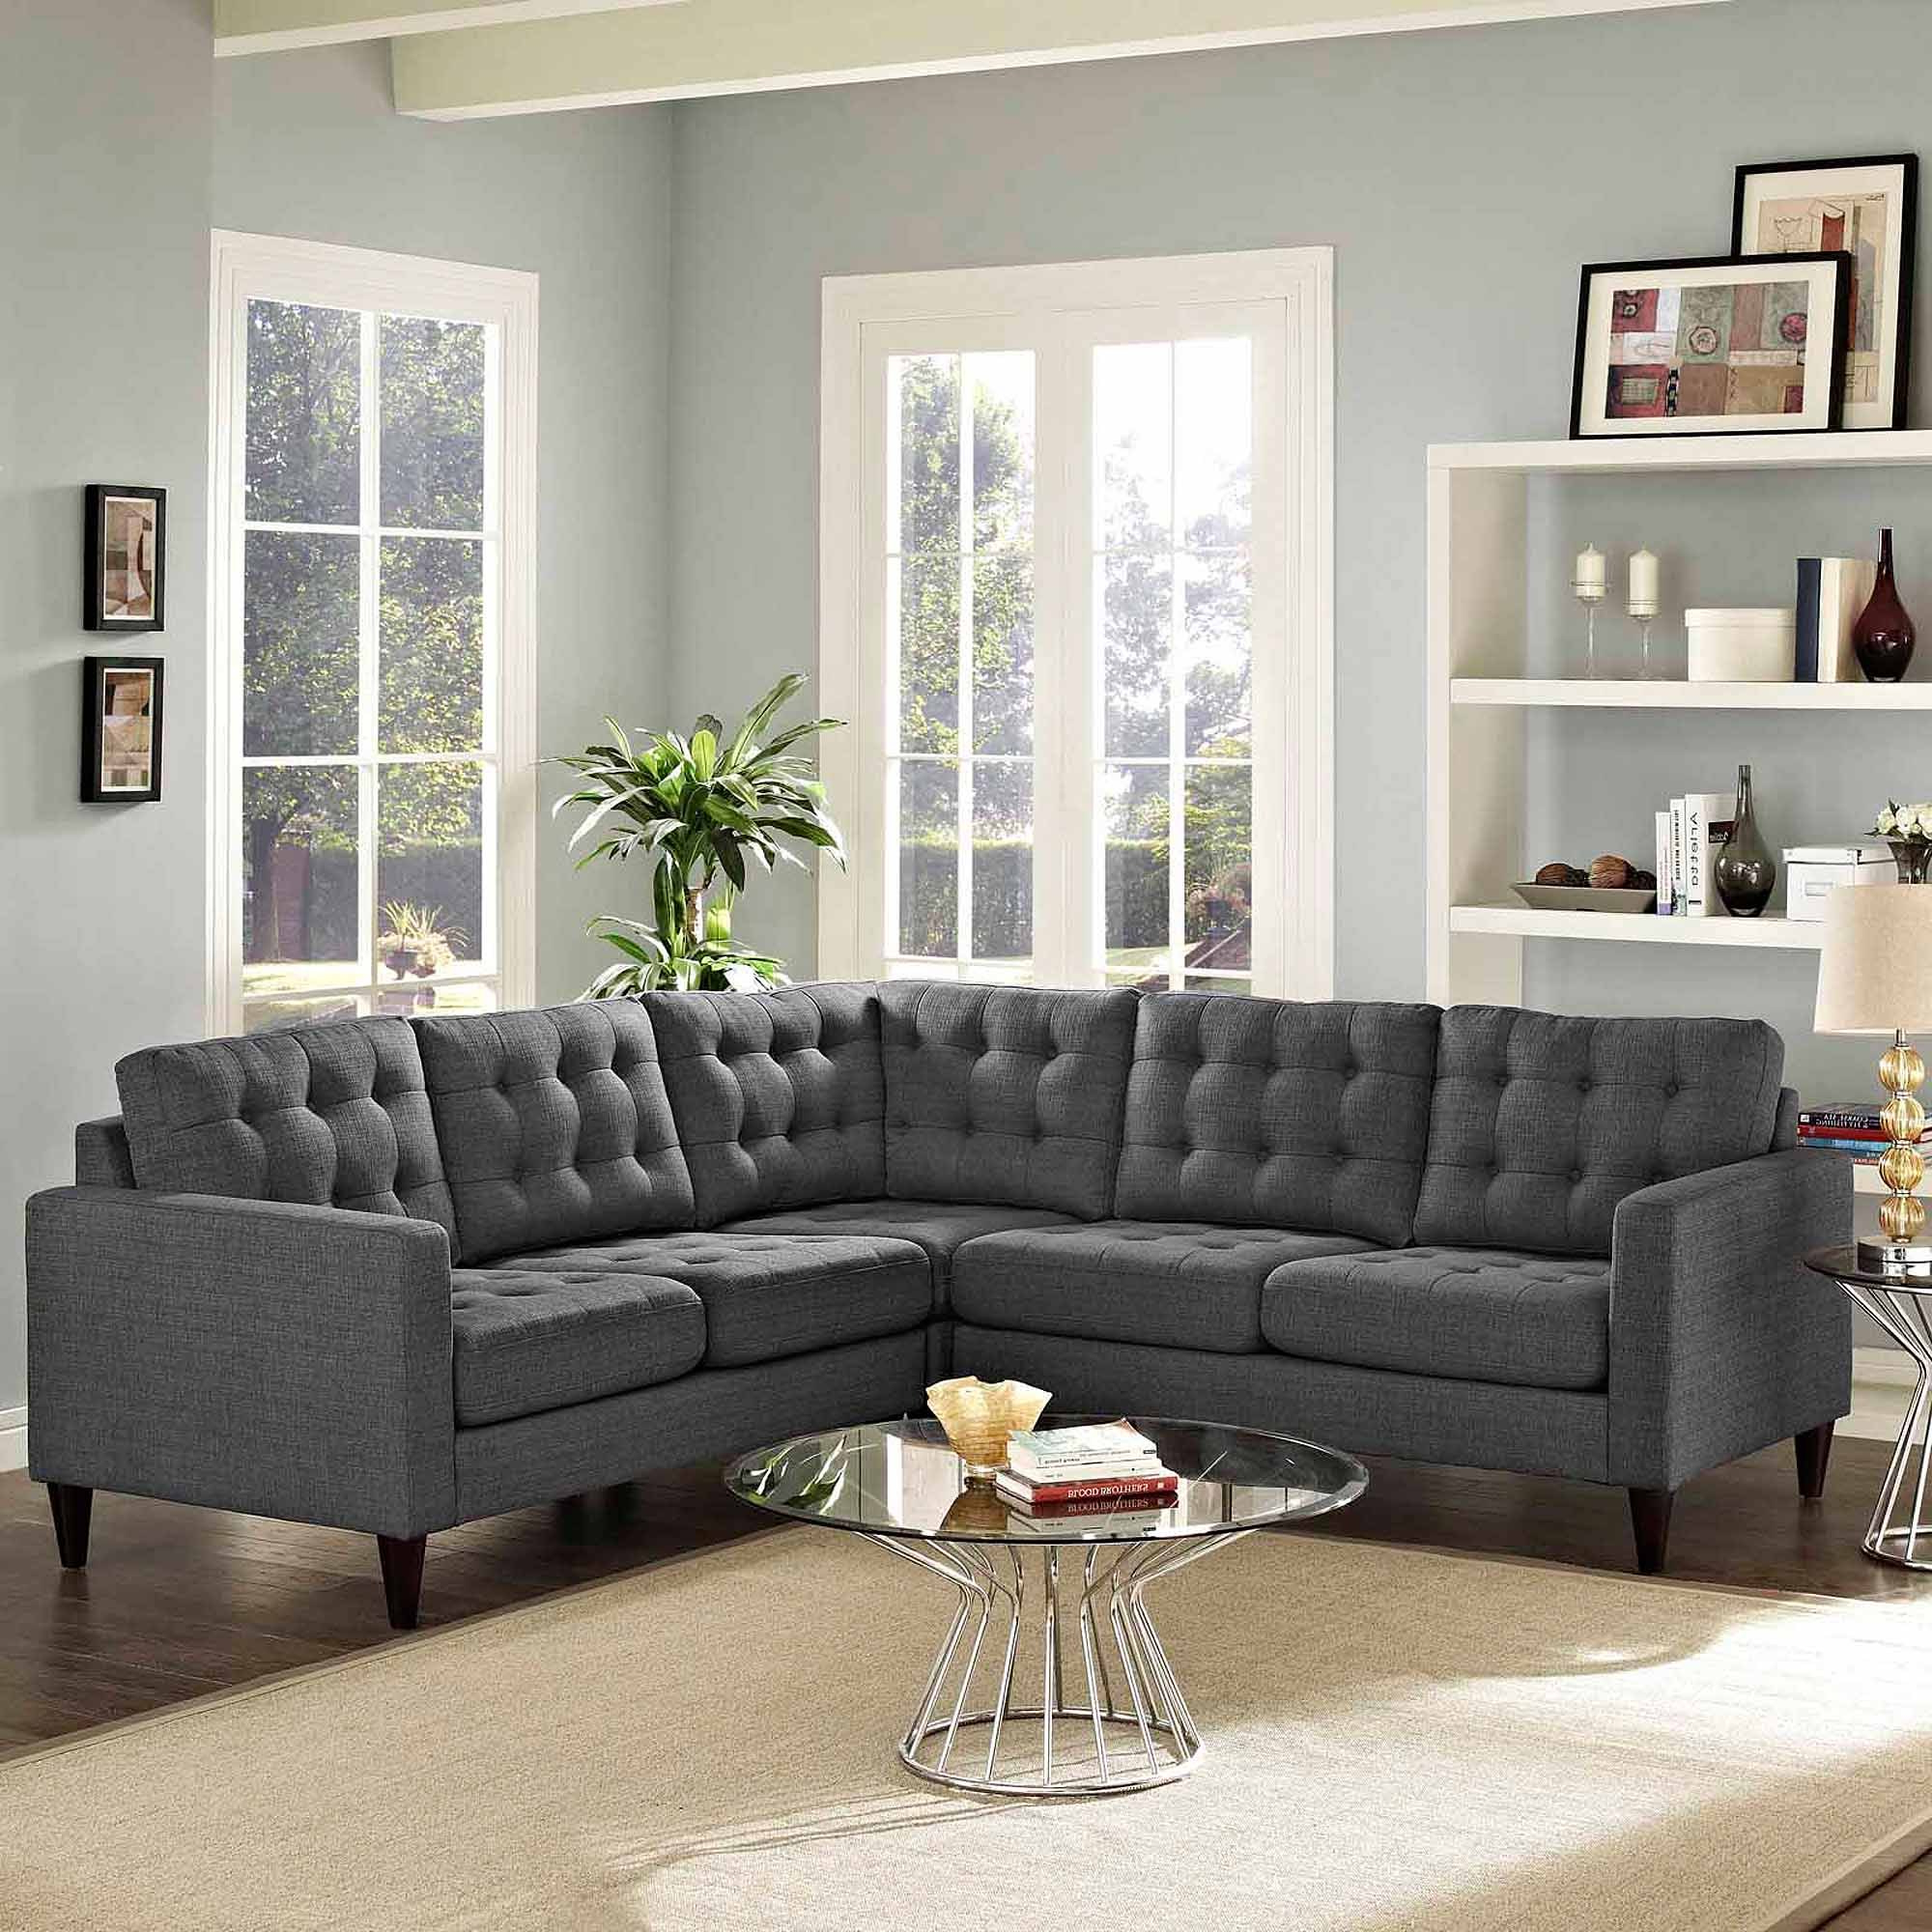 Moda 3 Piece Sectional With Chaise With Regard To Soane 3 Piece Sectionals By Nate Berkus And Jeremiah Brent (View 19 of 20)